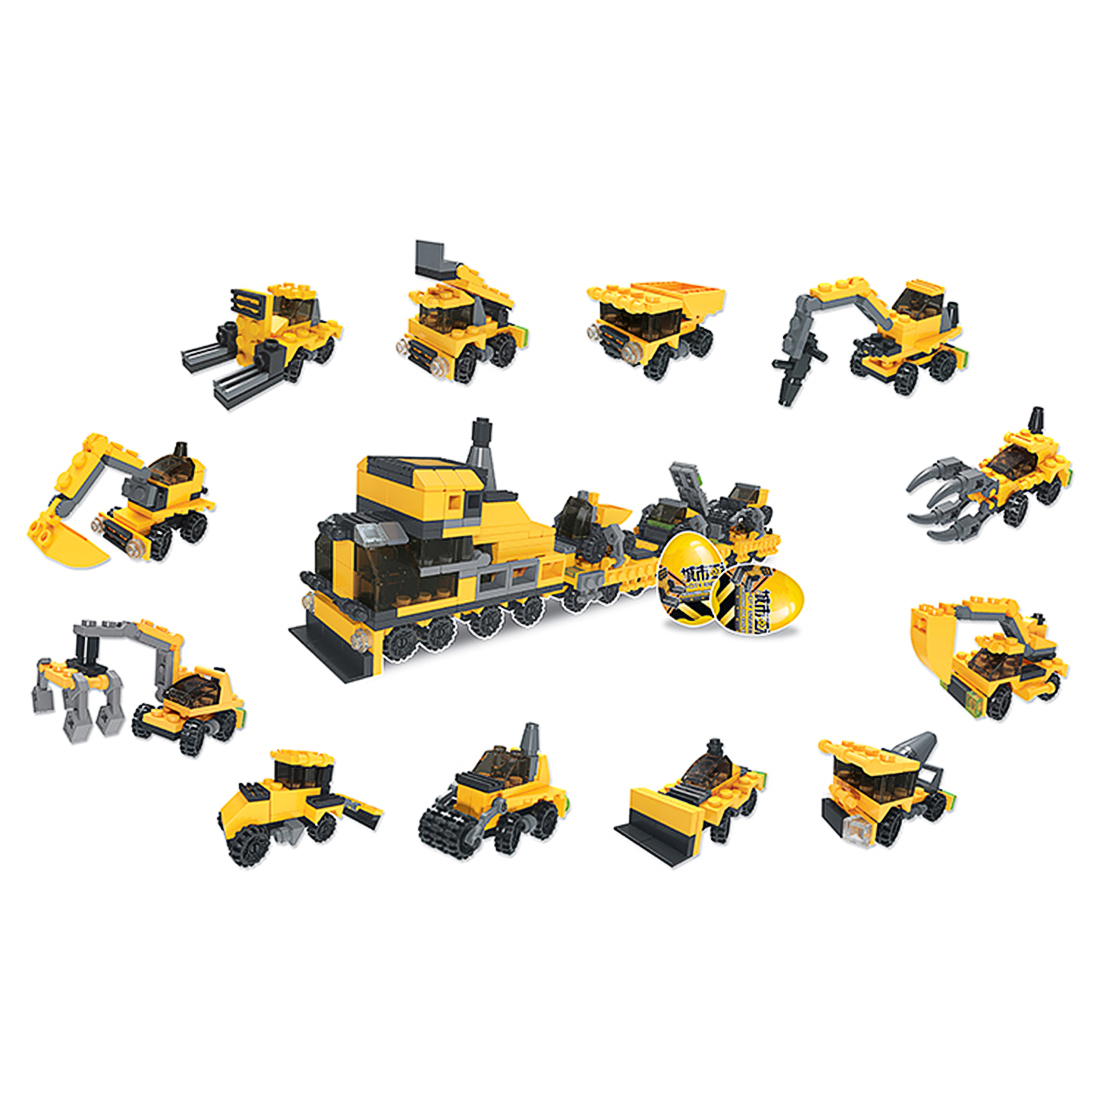 12 In 1 City Engineering Technic Car Transport Vehicle